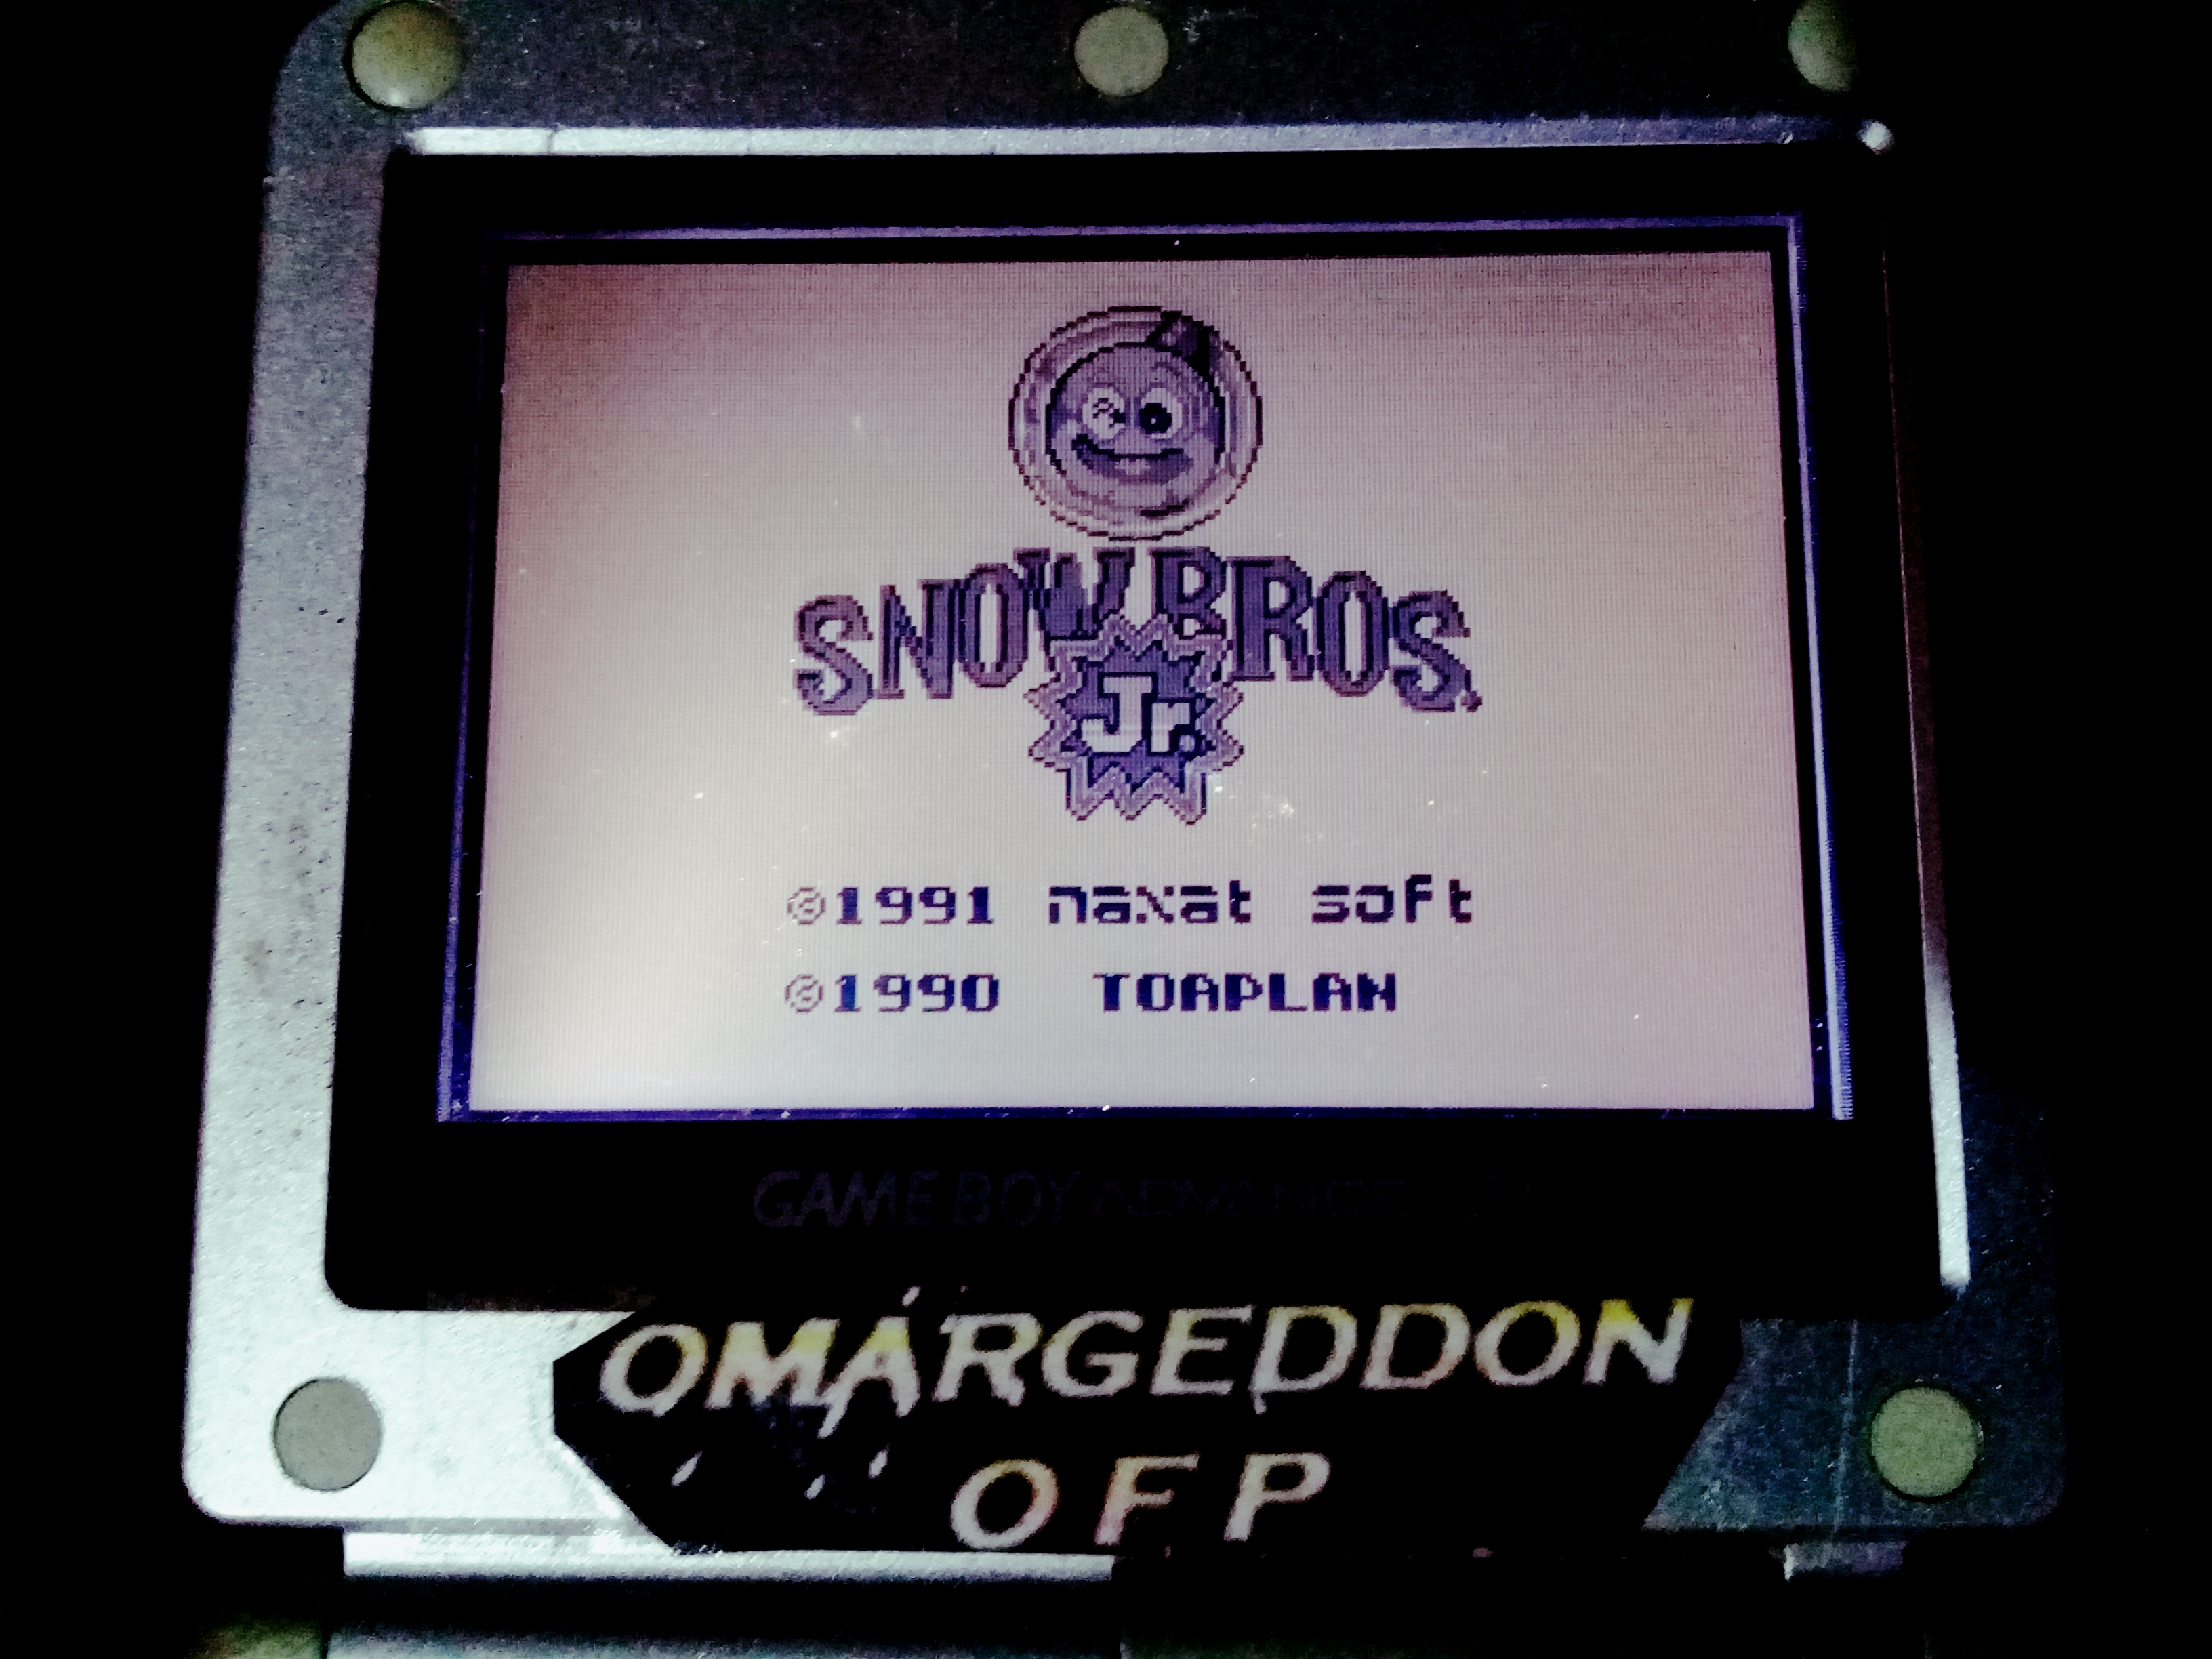 omargeddon: Snow Bros. Jr. (Game Boy) 79,360 points on 2020-08-24 17:05:17